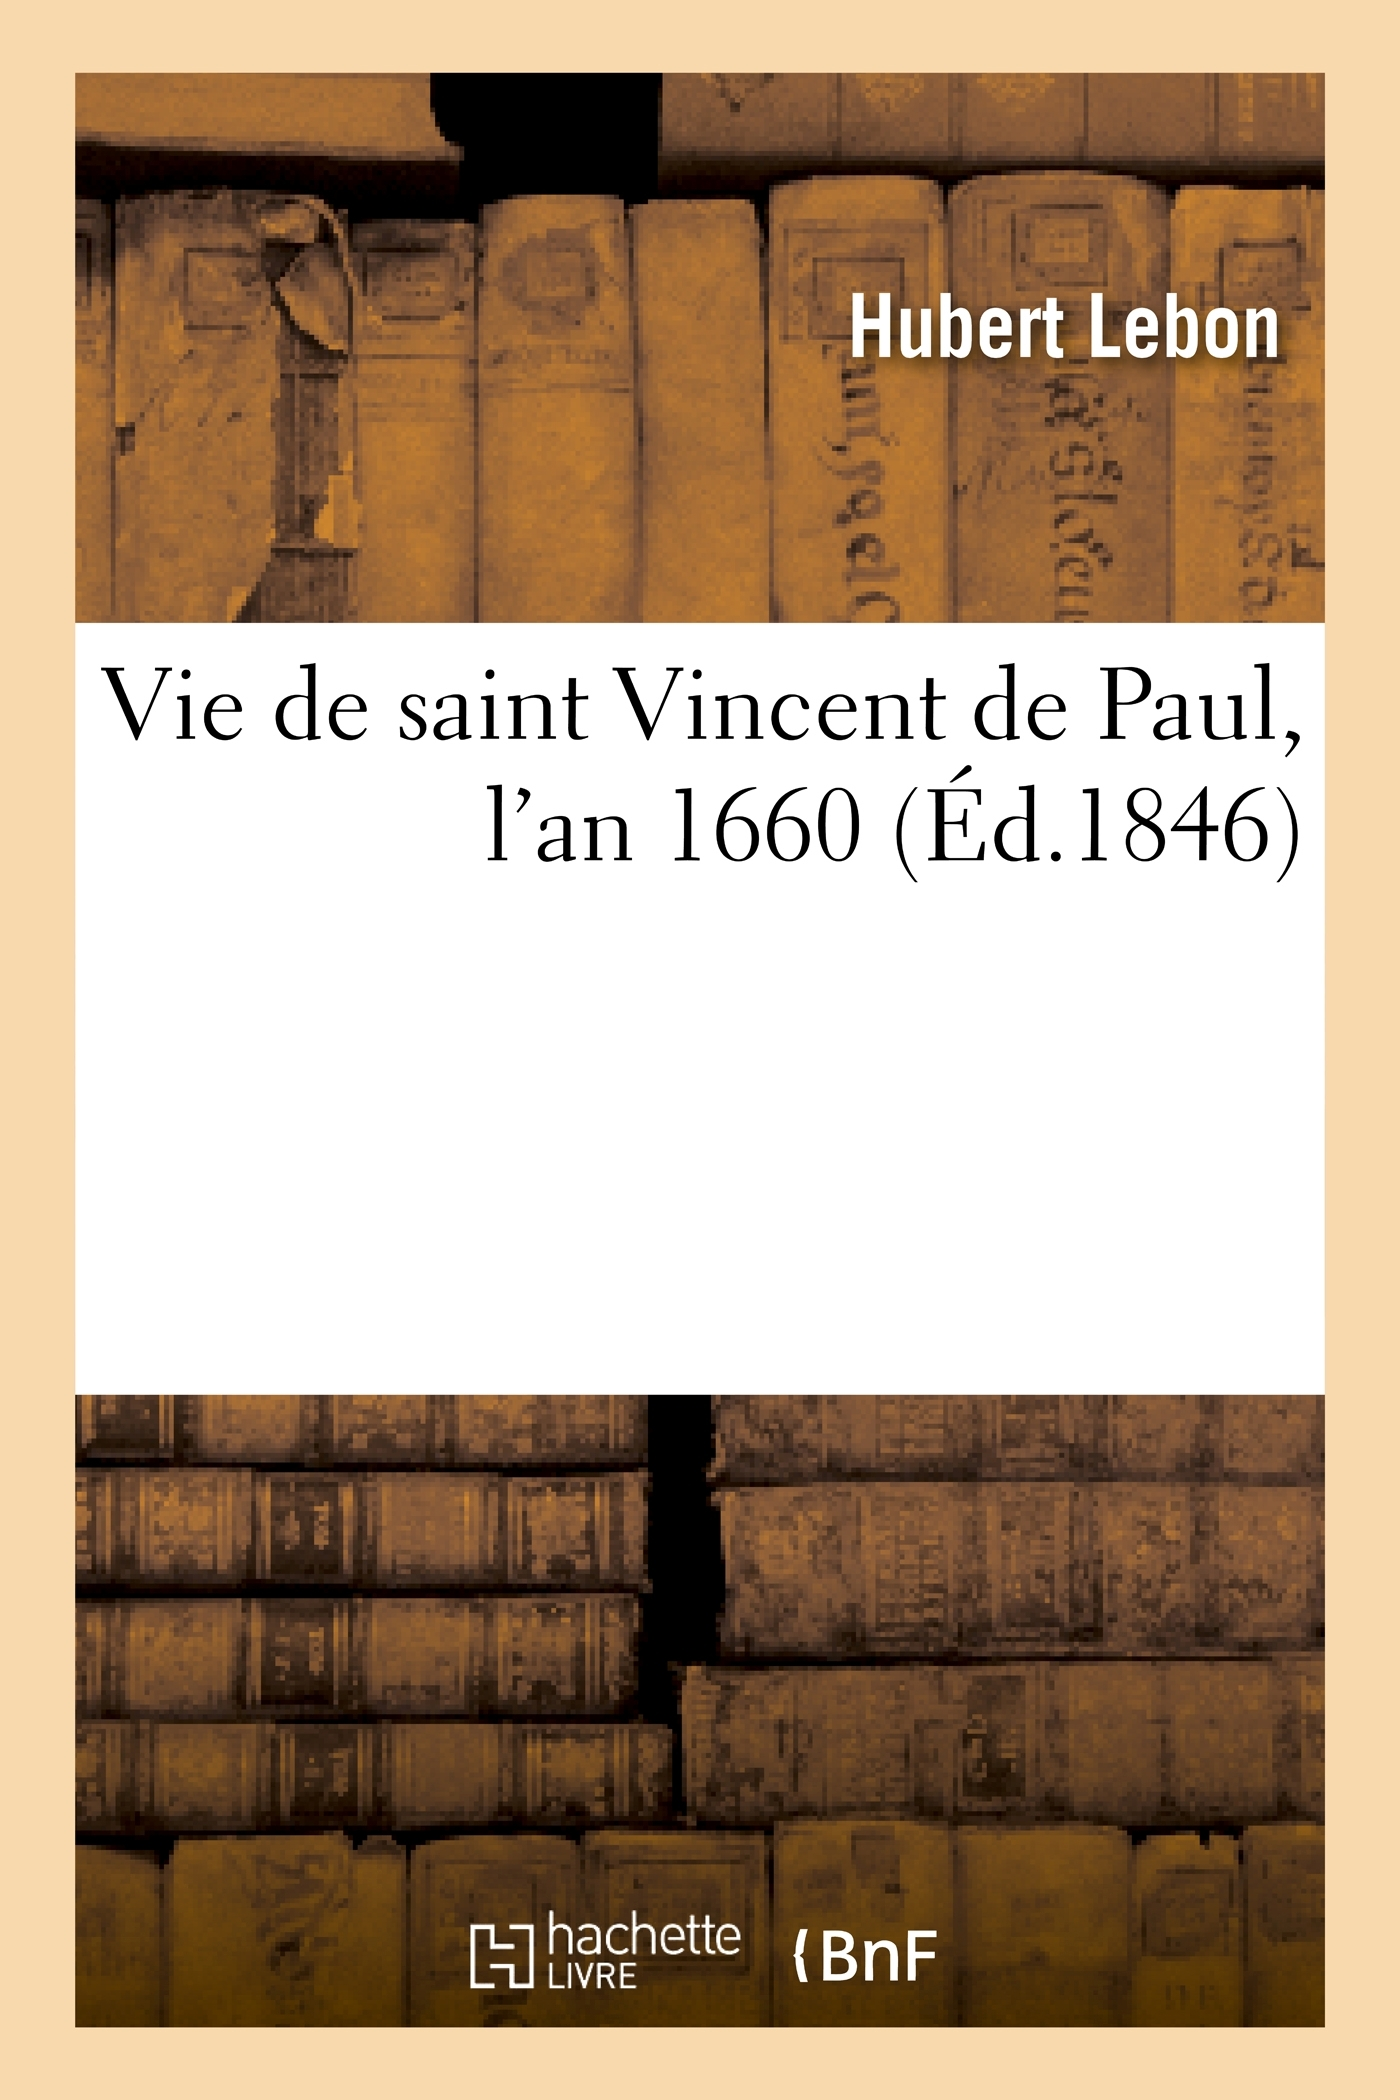 VIE DE SAINT VINCENT DE PAUL, L'AN 1660 (ED.1846)